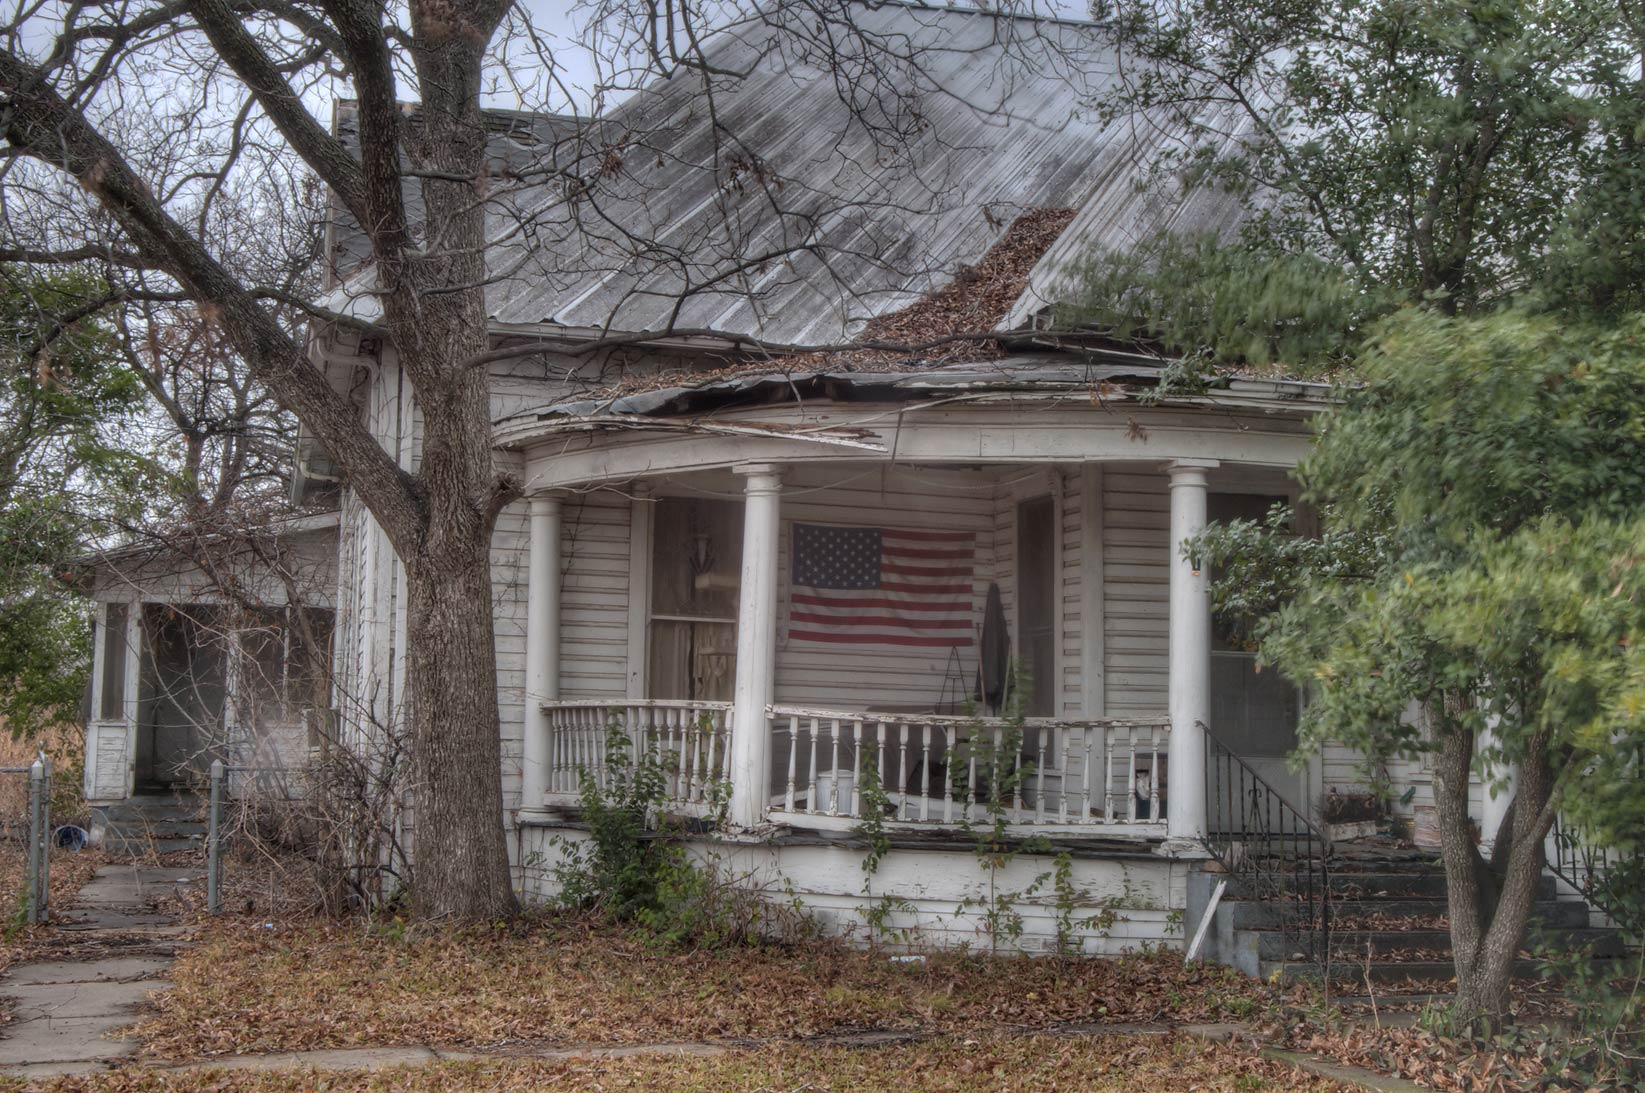 Old house at Rd. 320 (Gassaway), a corner of 5-th St. in Lott. Texas